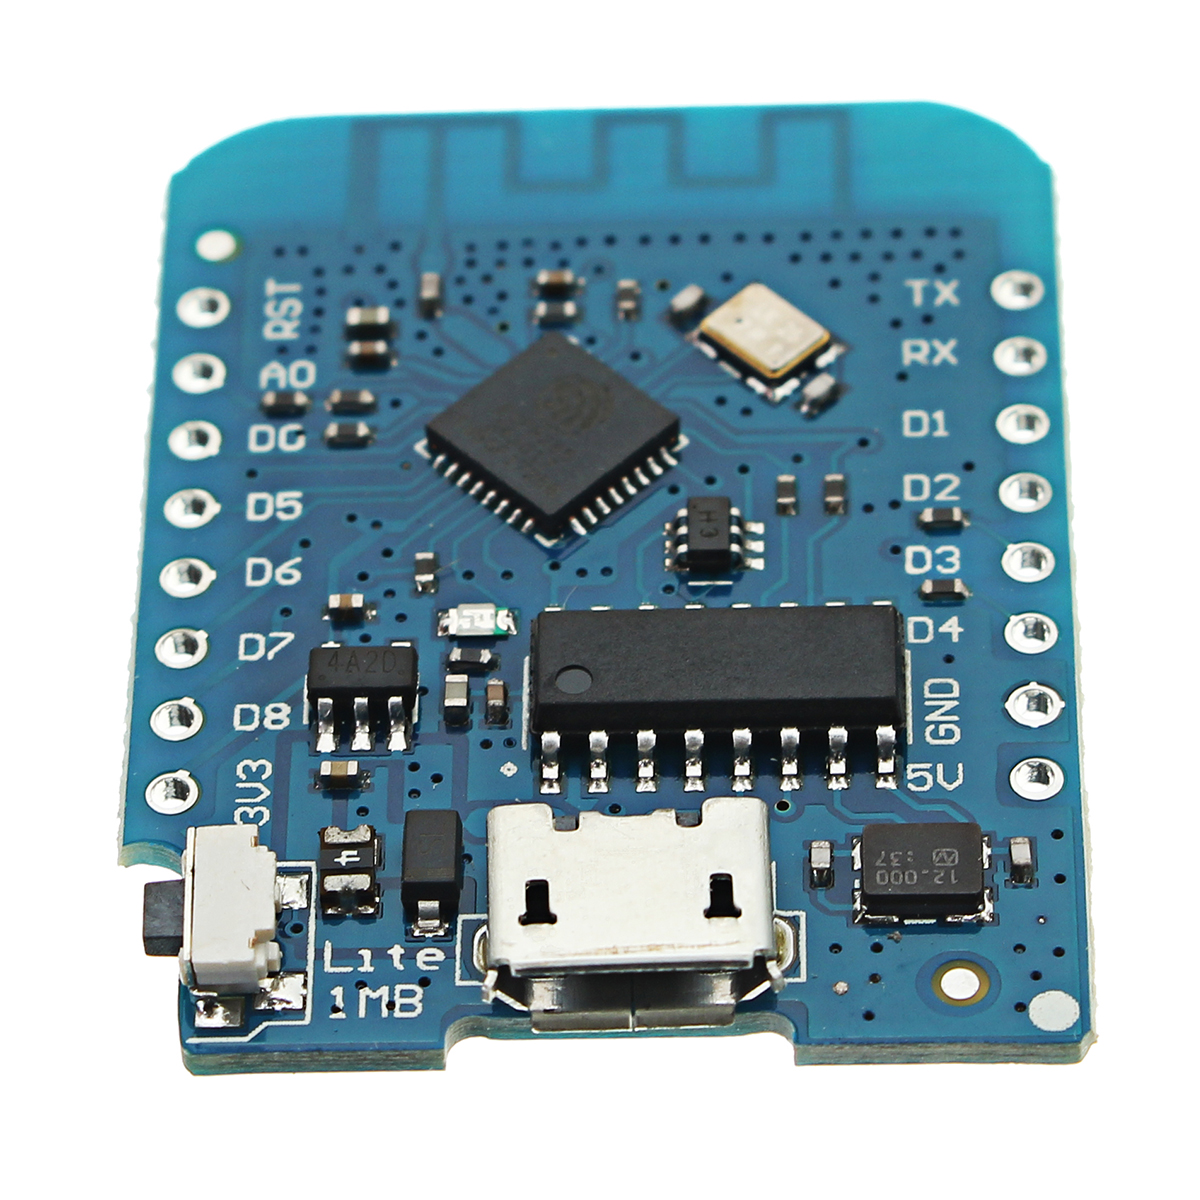 wemos03 d1 mini lite v1.0.0 wifi internet of